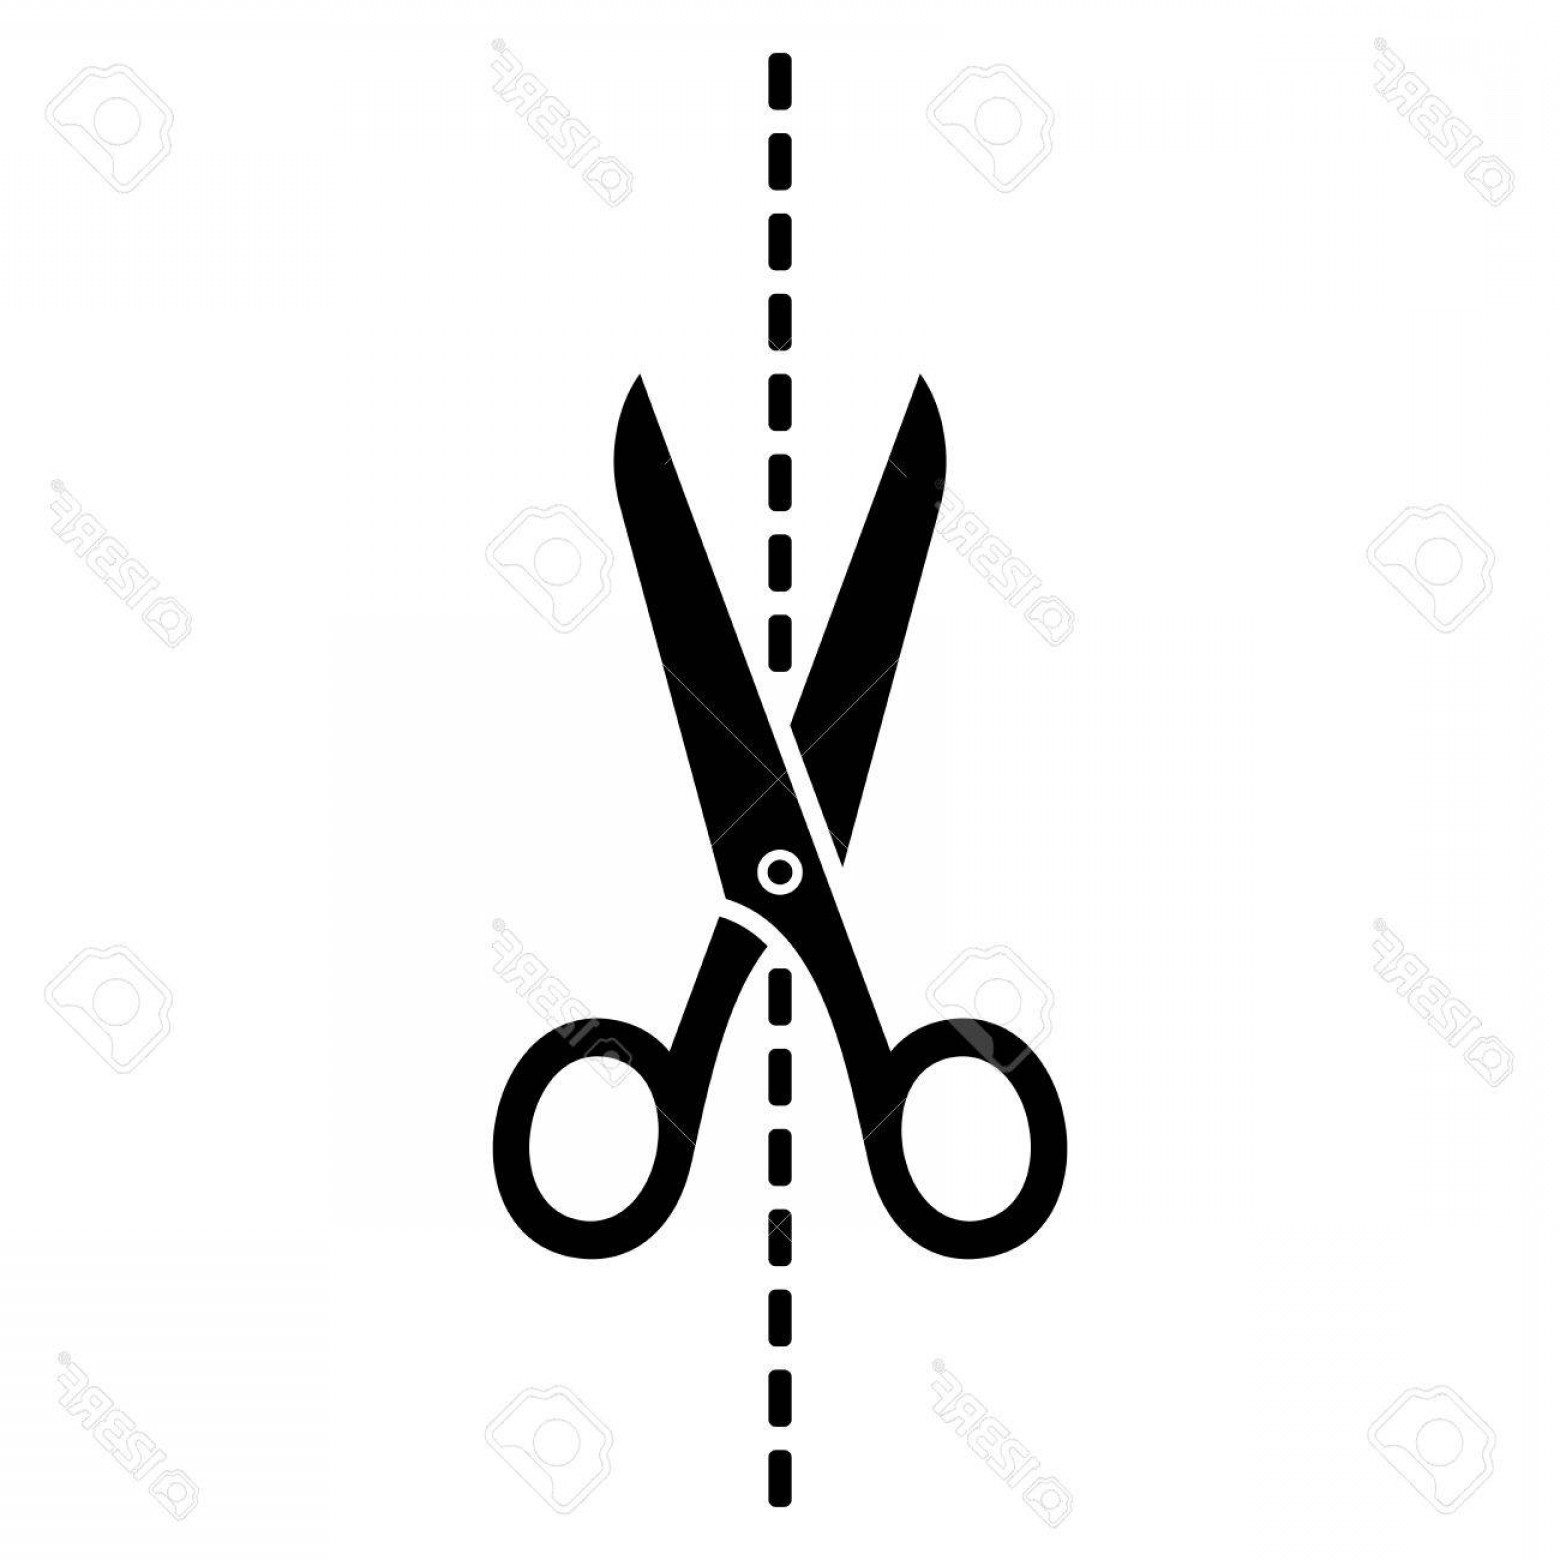 Cut Symbol Vector: Photostock Vector Scissors Icon With Cut Line On White Background Vector Illustration